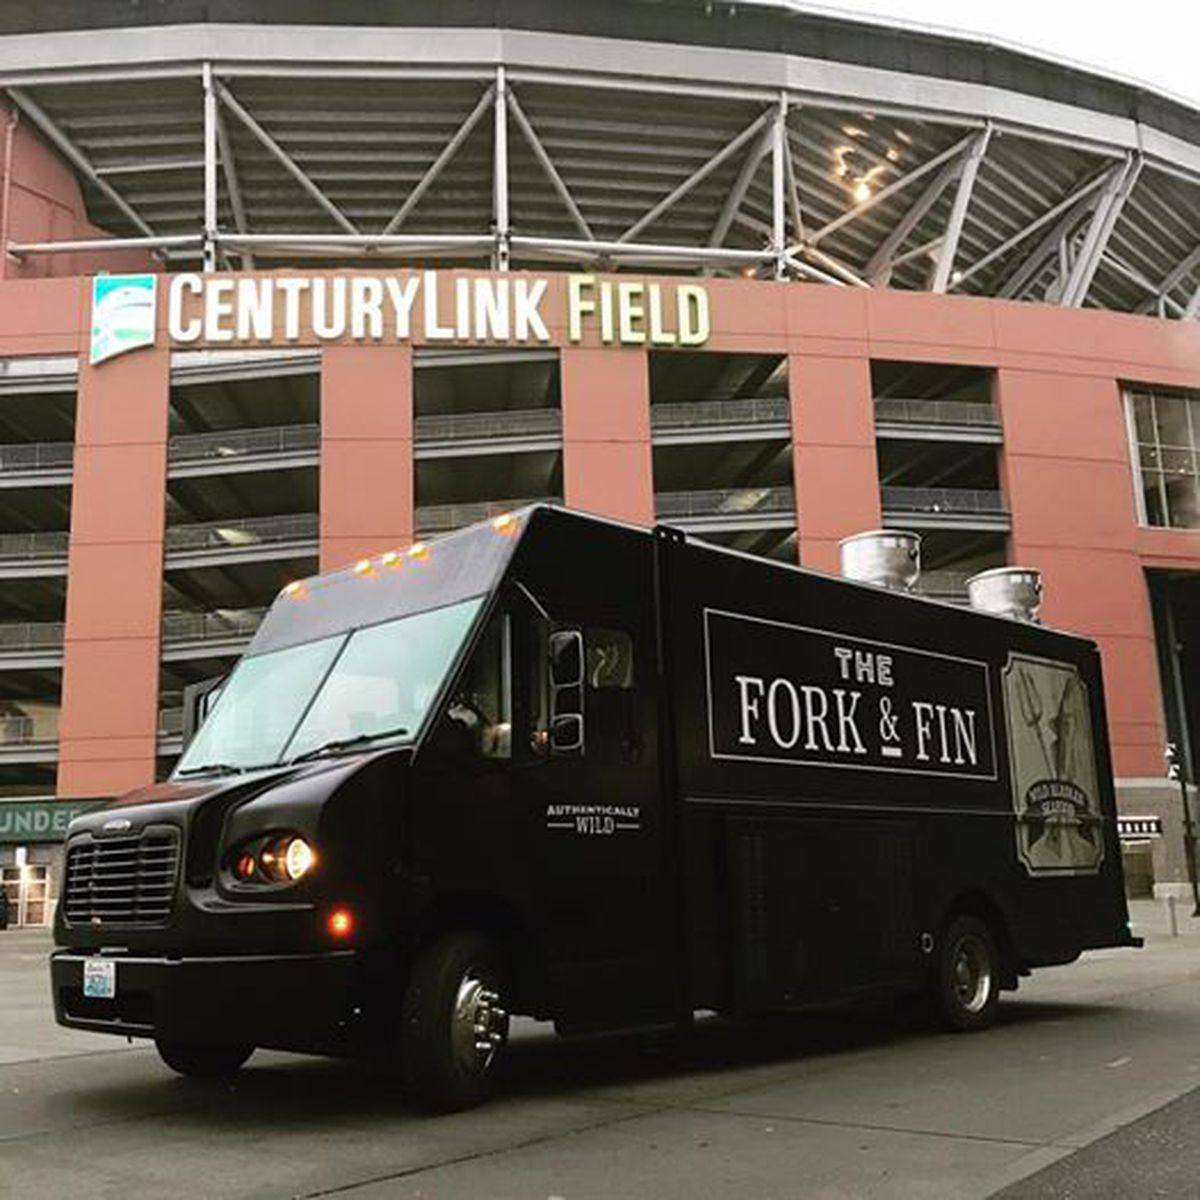 The Fork & Fin food truck, presented by Trident Seafoods, highlights dishes made with Alaska pollock. (Photo courtesy Fork & Fin Facebook page via Trident Seafoods)